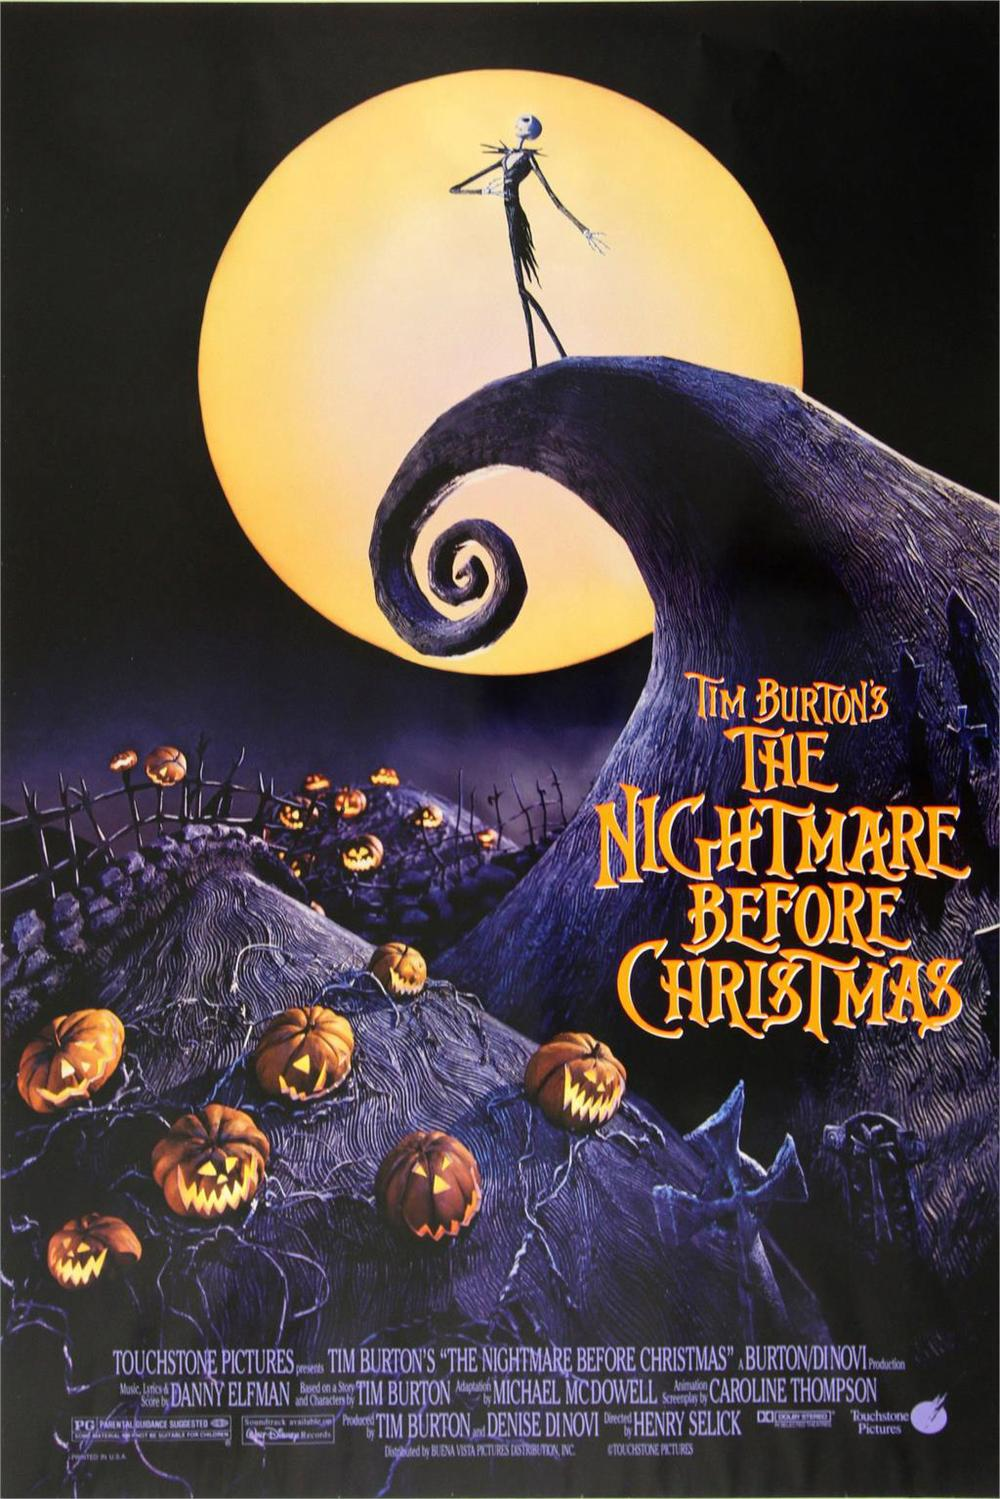 Tim Burton's The Nightmare Before Christmas Movie Classic Poster Home Decoration Art Silk -High quality Picture Print 24x36 inch(China (Mainland))